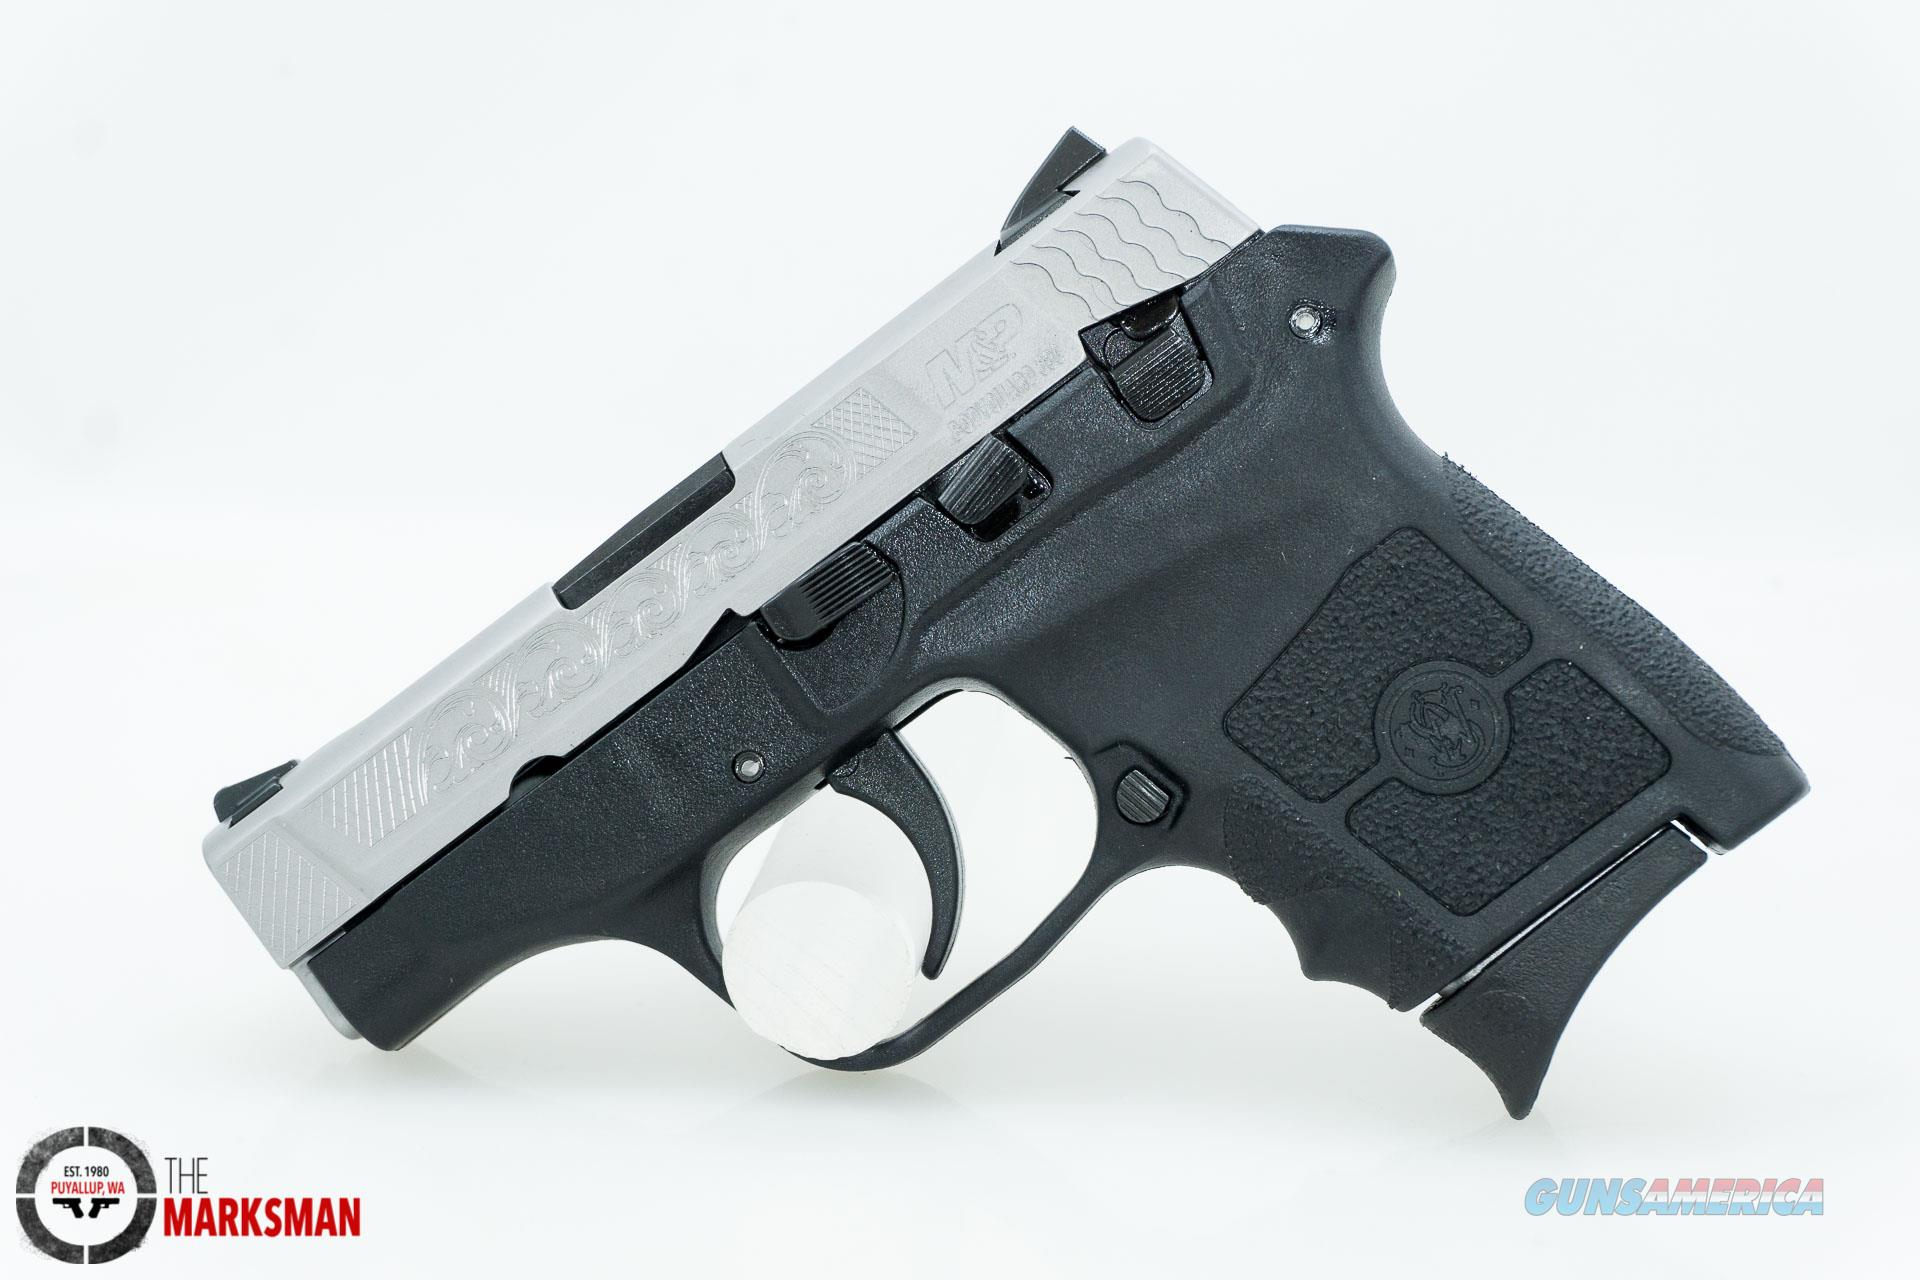 Smith and Wesson M&P Bodyguard, .380 ACP, Engraved NEW  Guns > Pistols > Smith & Wesson Pistols - Autos > Polymer Frame